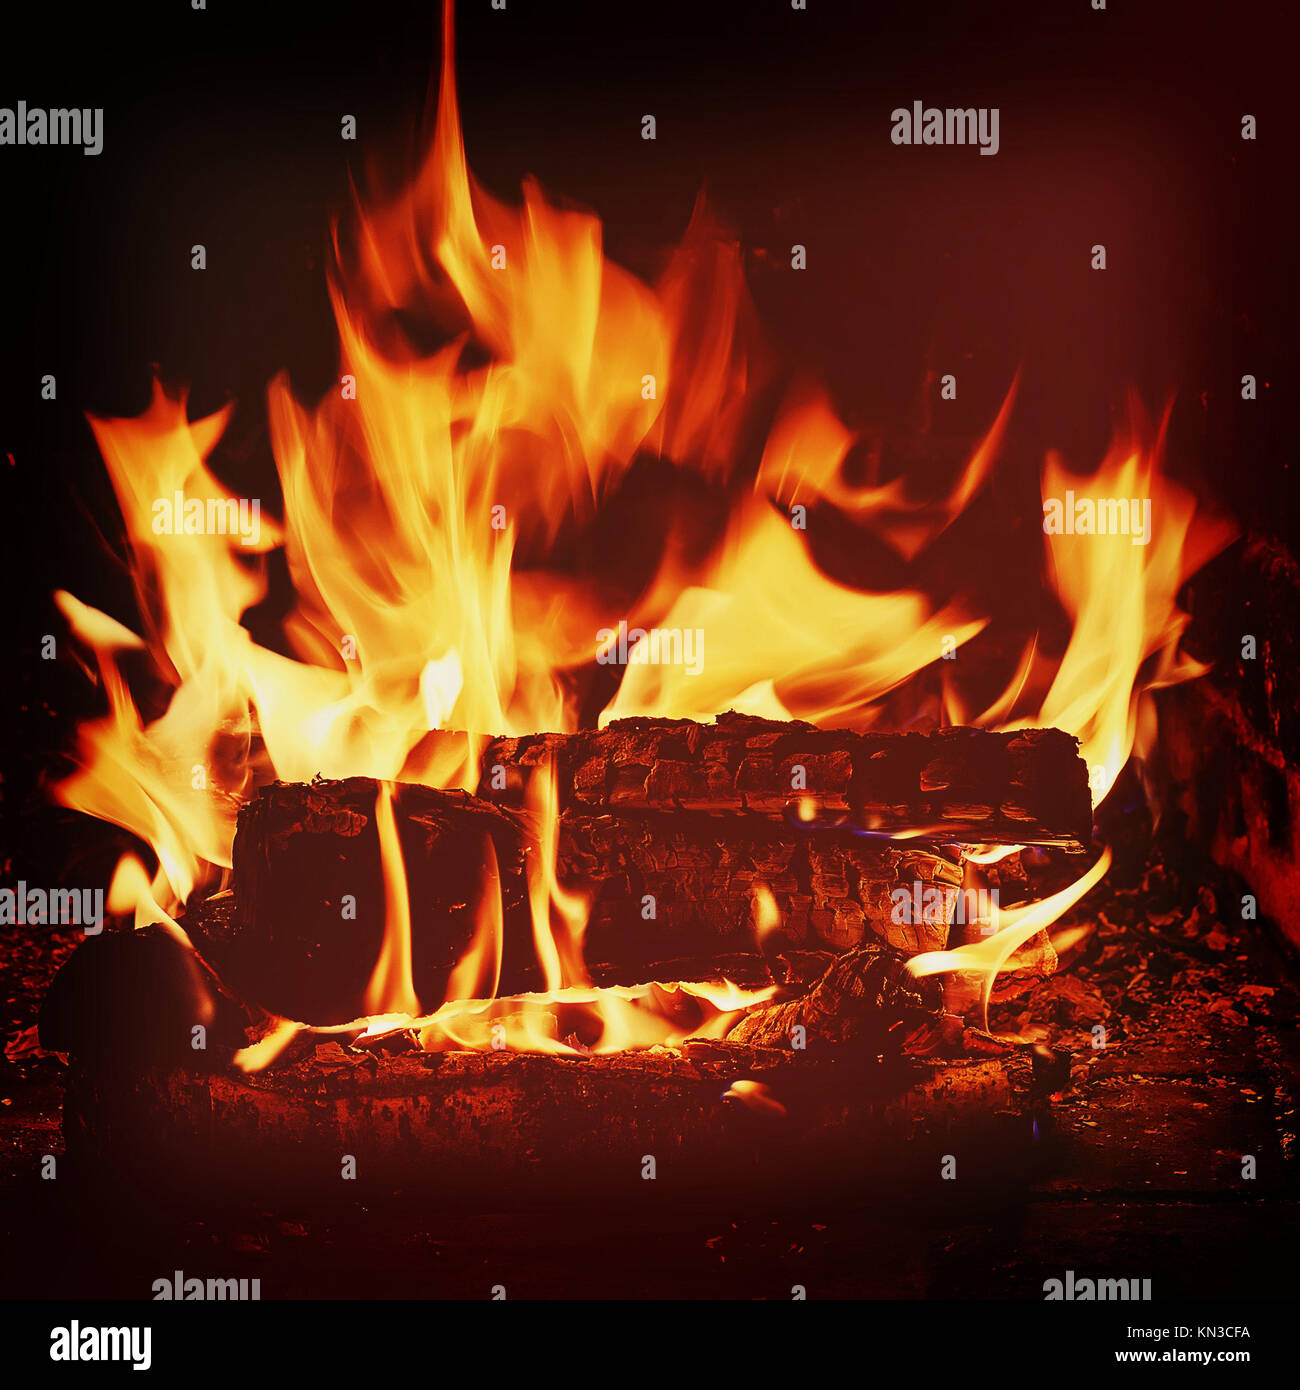 Fireplace with birch firewood and flame with retro filter effect. - Stock Image